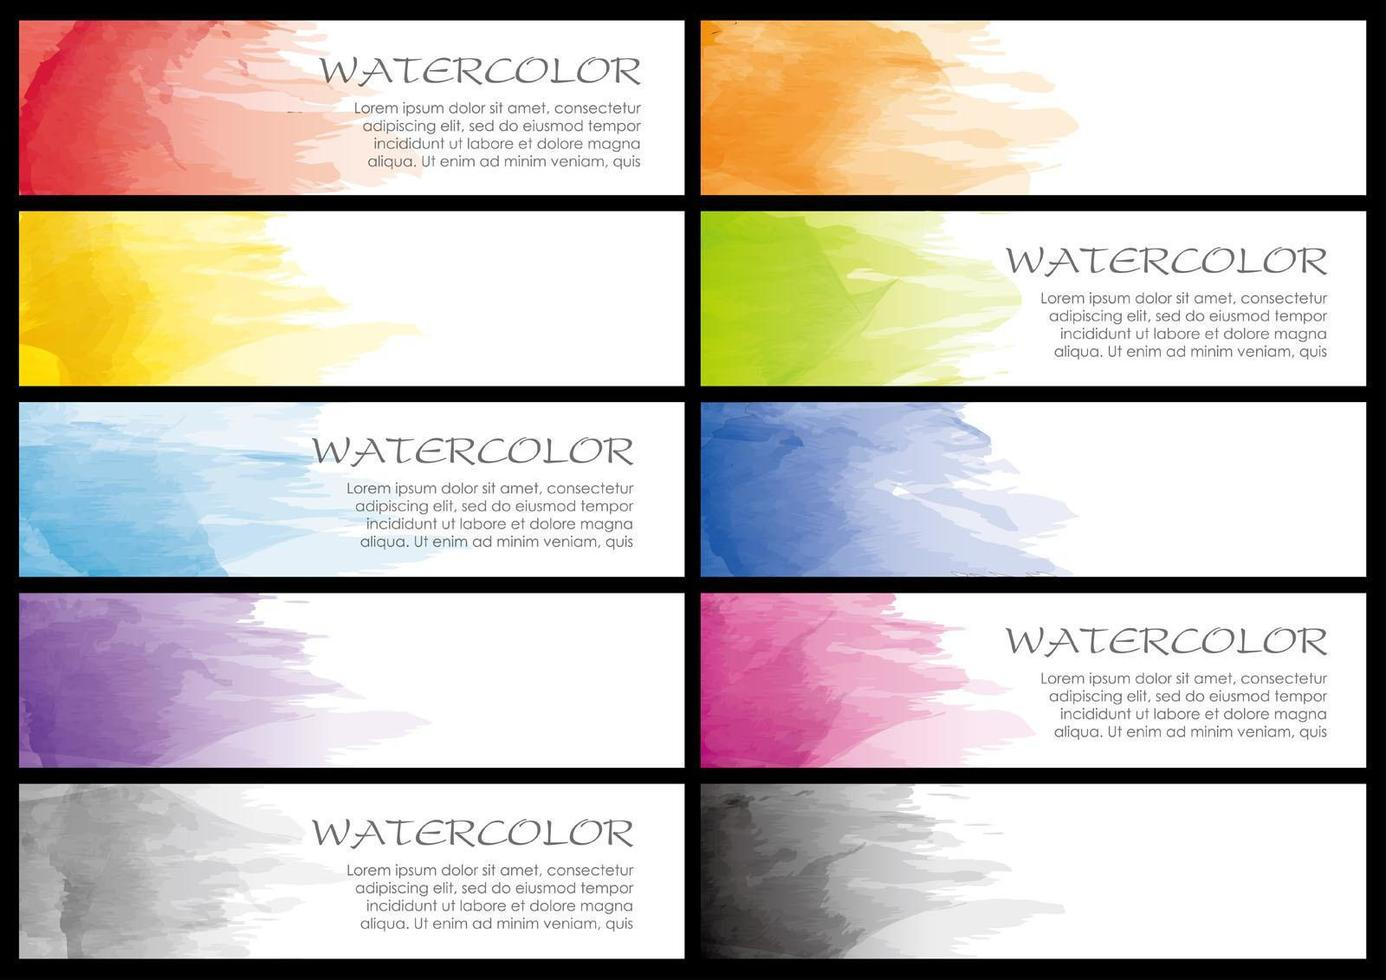 Set of watercolor colorful banners vector